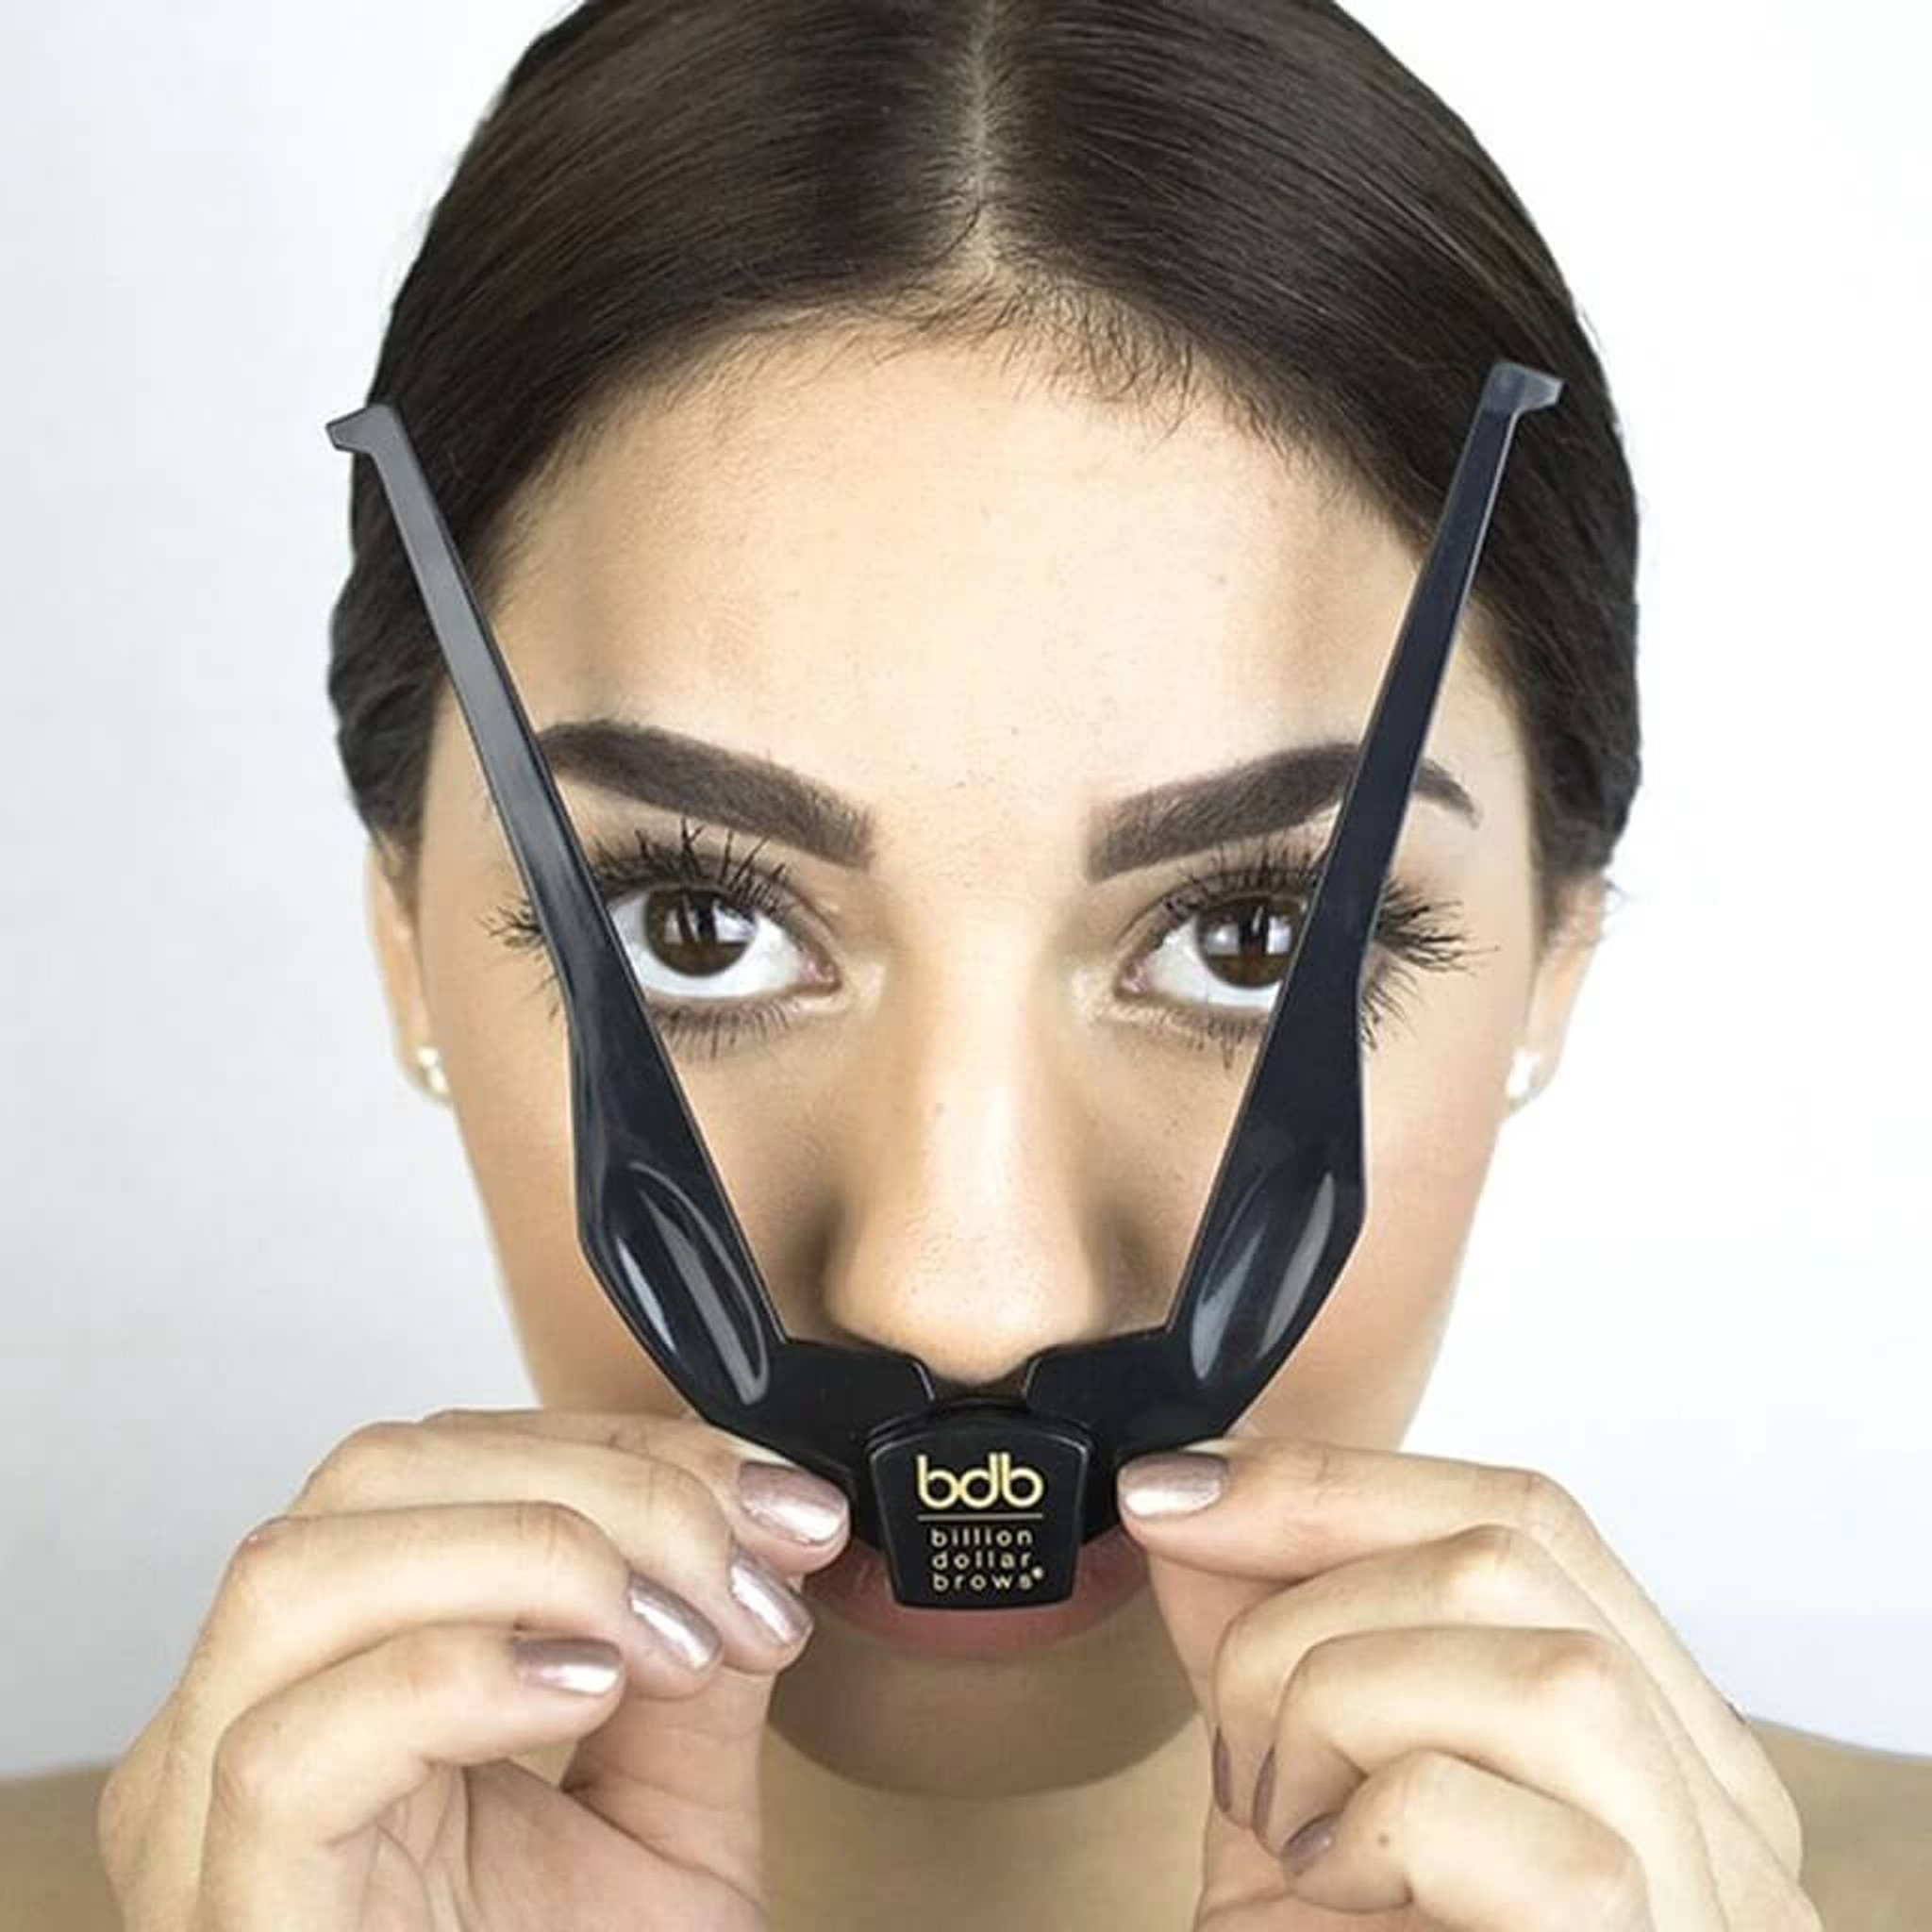 Bdb brow buddy kit use 2